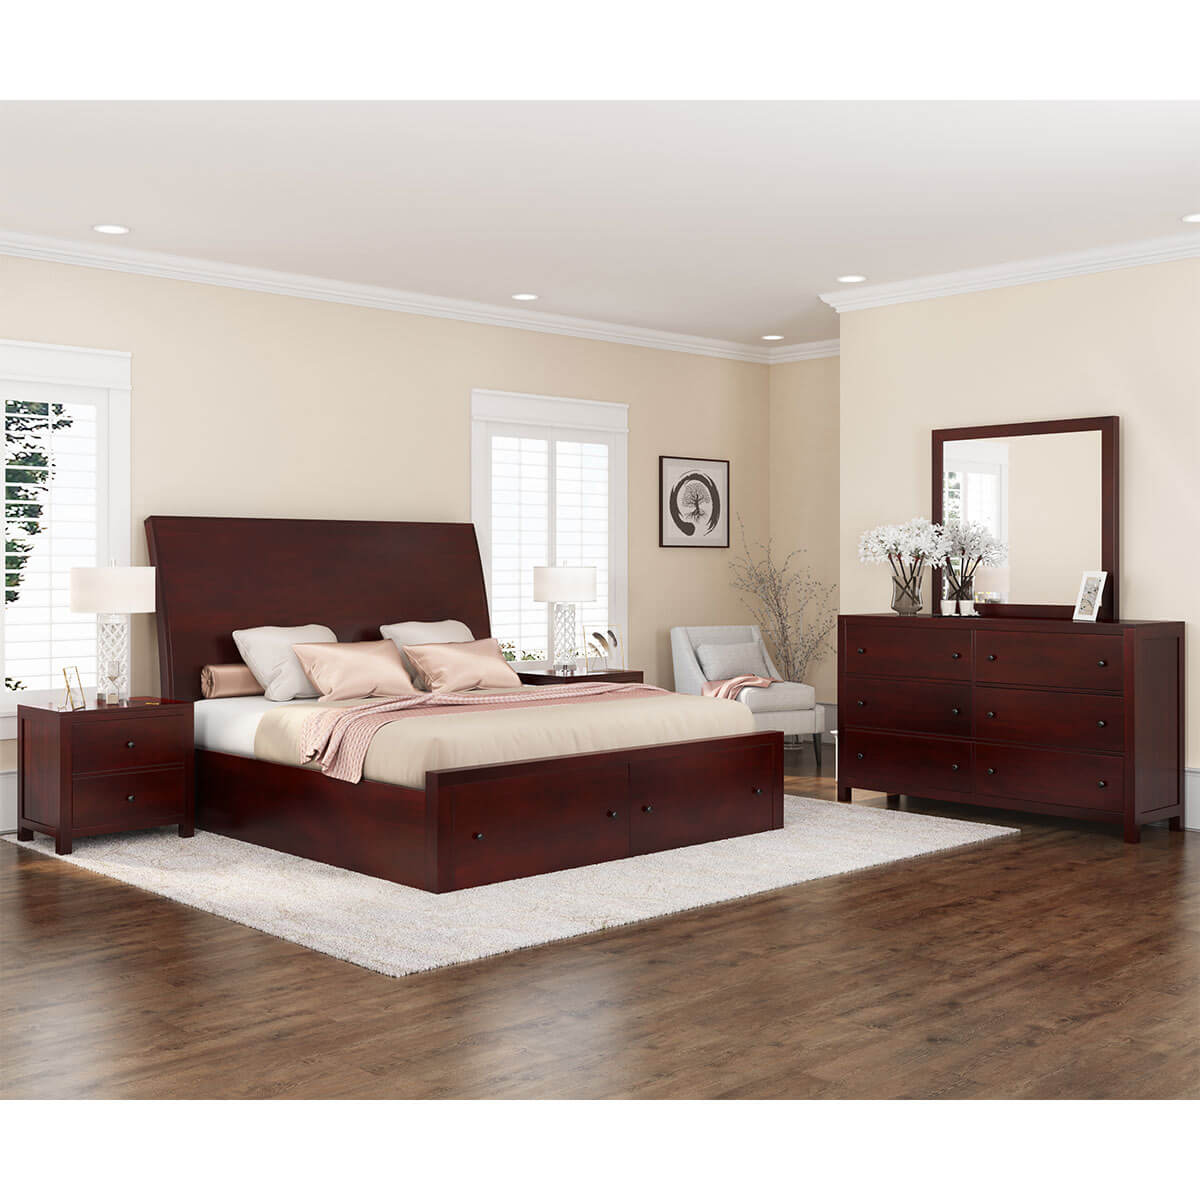 Petros transitional 6 piece california king size bedroom set for 6 piece king size bedroom sets